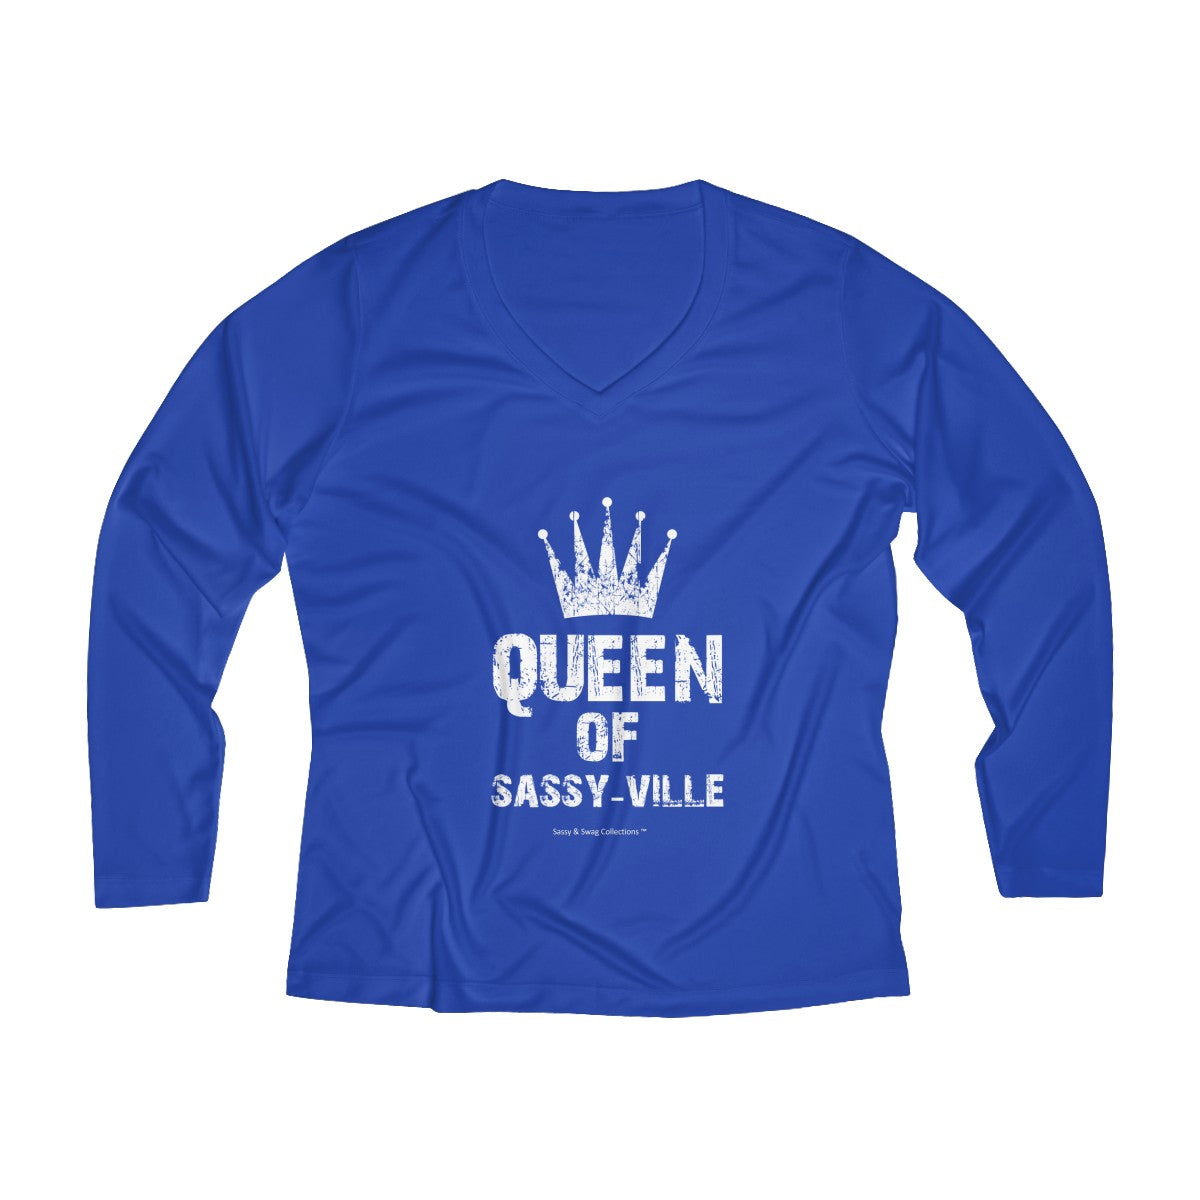 Sassy & Swag Collections - Queen of Sassy-ville Women's Long Sleeve Performance V-neck Tee